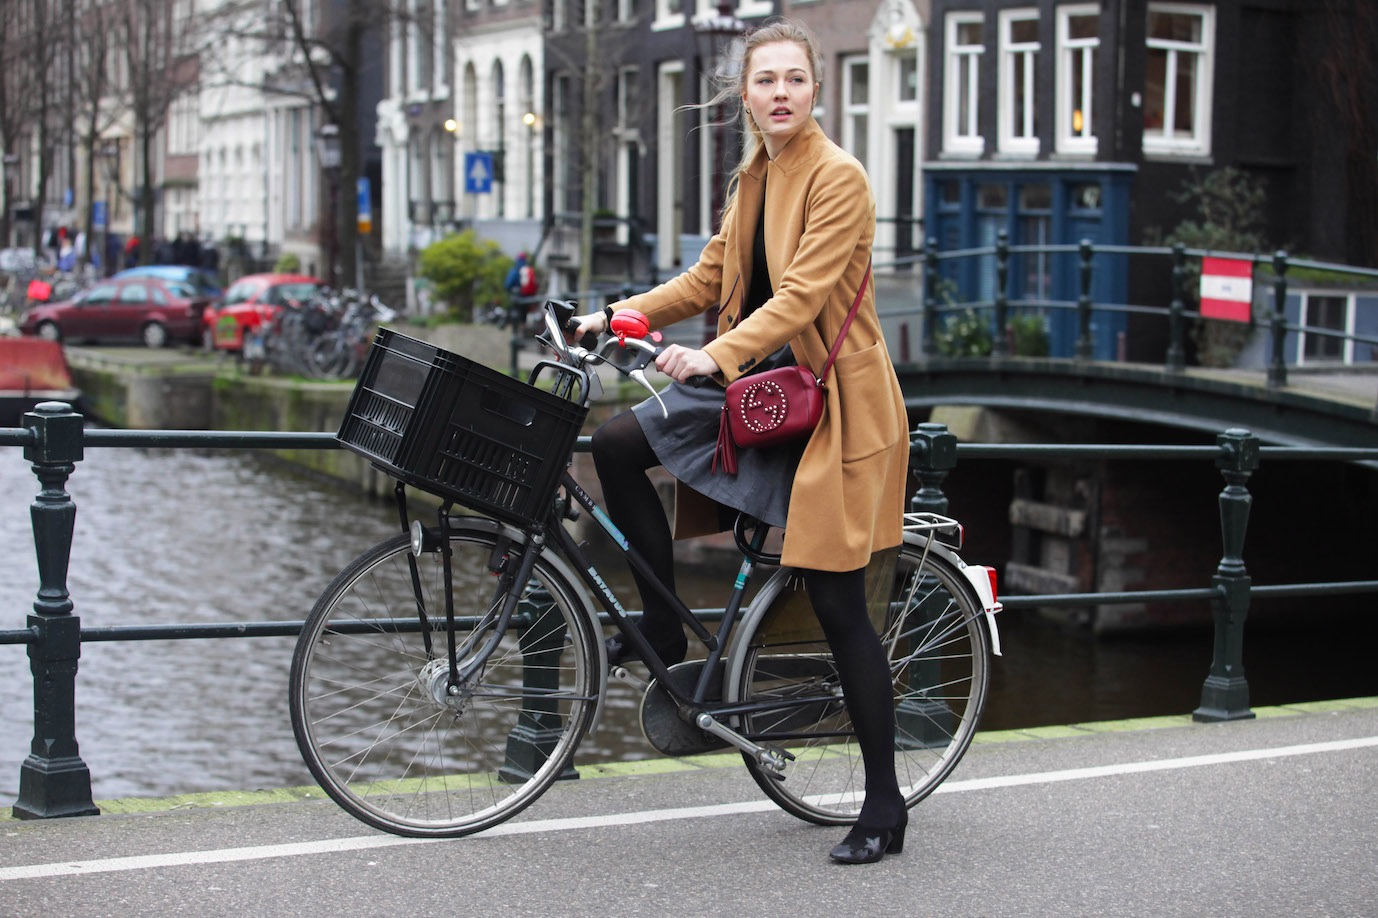 Floortjeloves, Plan78, plan78 photography, model, modeling, photography, bike, do you ride my bicycle, bicycle, camel coat, leather skirt, gucci, gucci bag, wolford